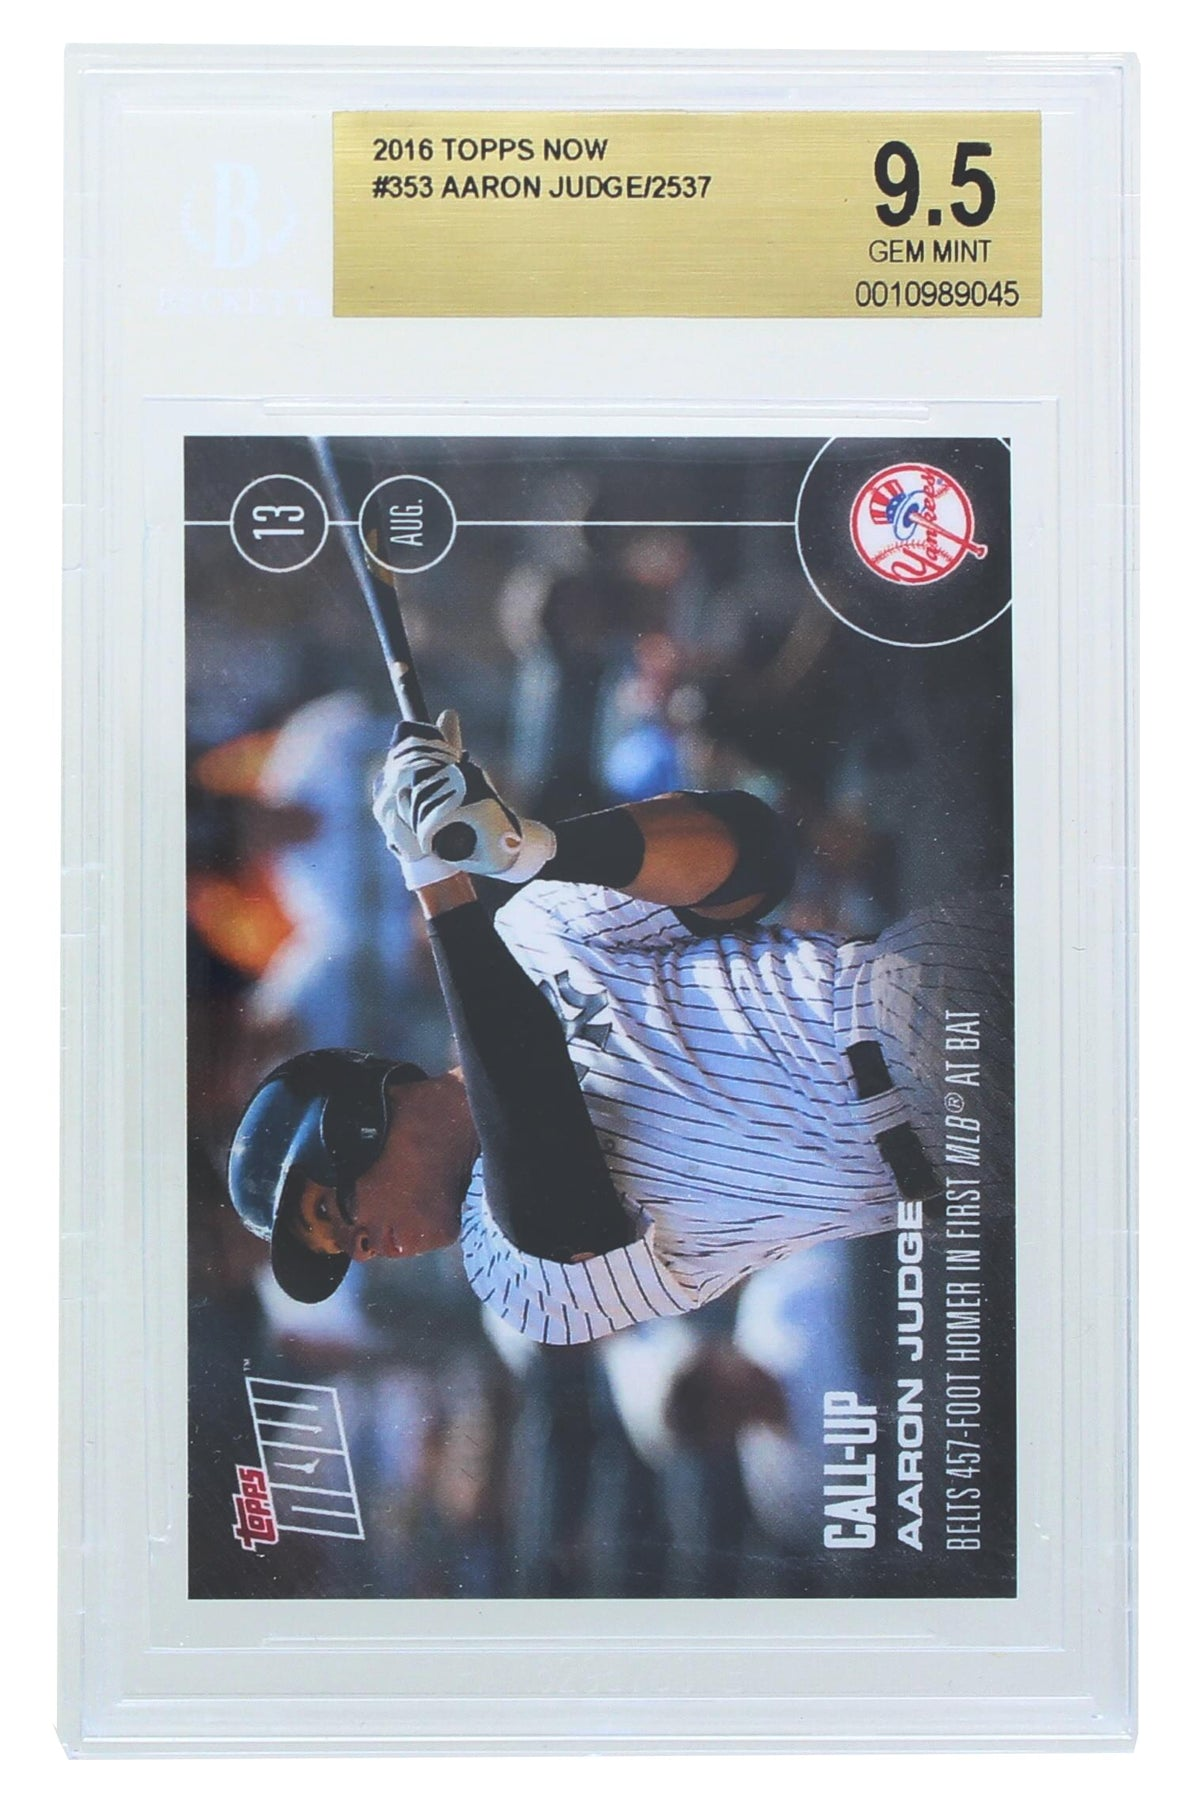 Aaron Judge New York Yankees 2016 Topps Now Rookie Card #356 BGS 9.5